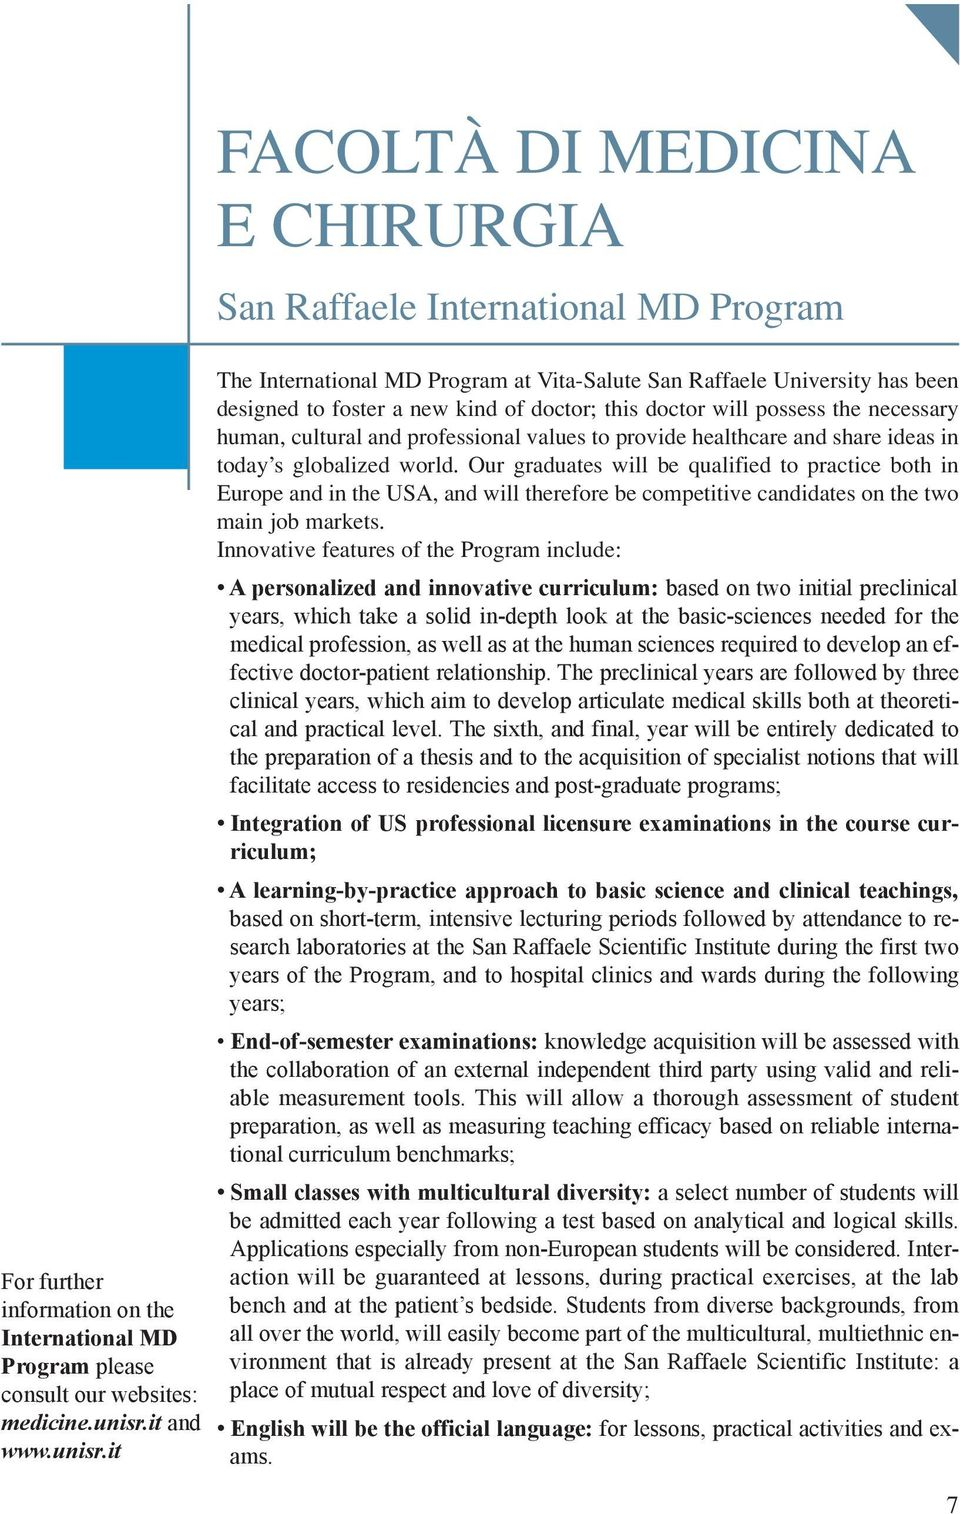 it FACOLTÀ DI MEDICINA E CHIRURGIA San Raffaele International MD Program The International MD Program at Vita-Salute San Raffaele University has been designed to foster a new kind of doctor; this